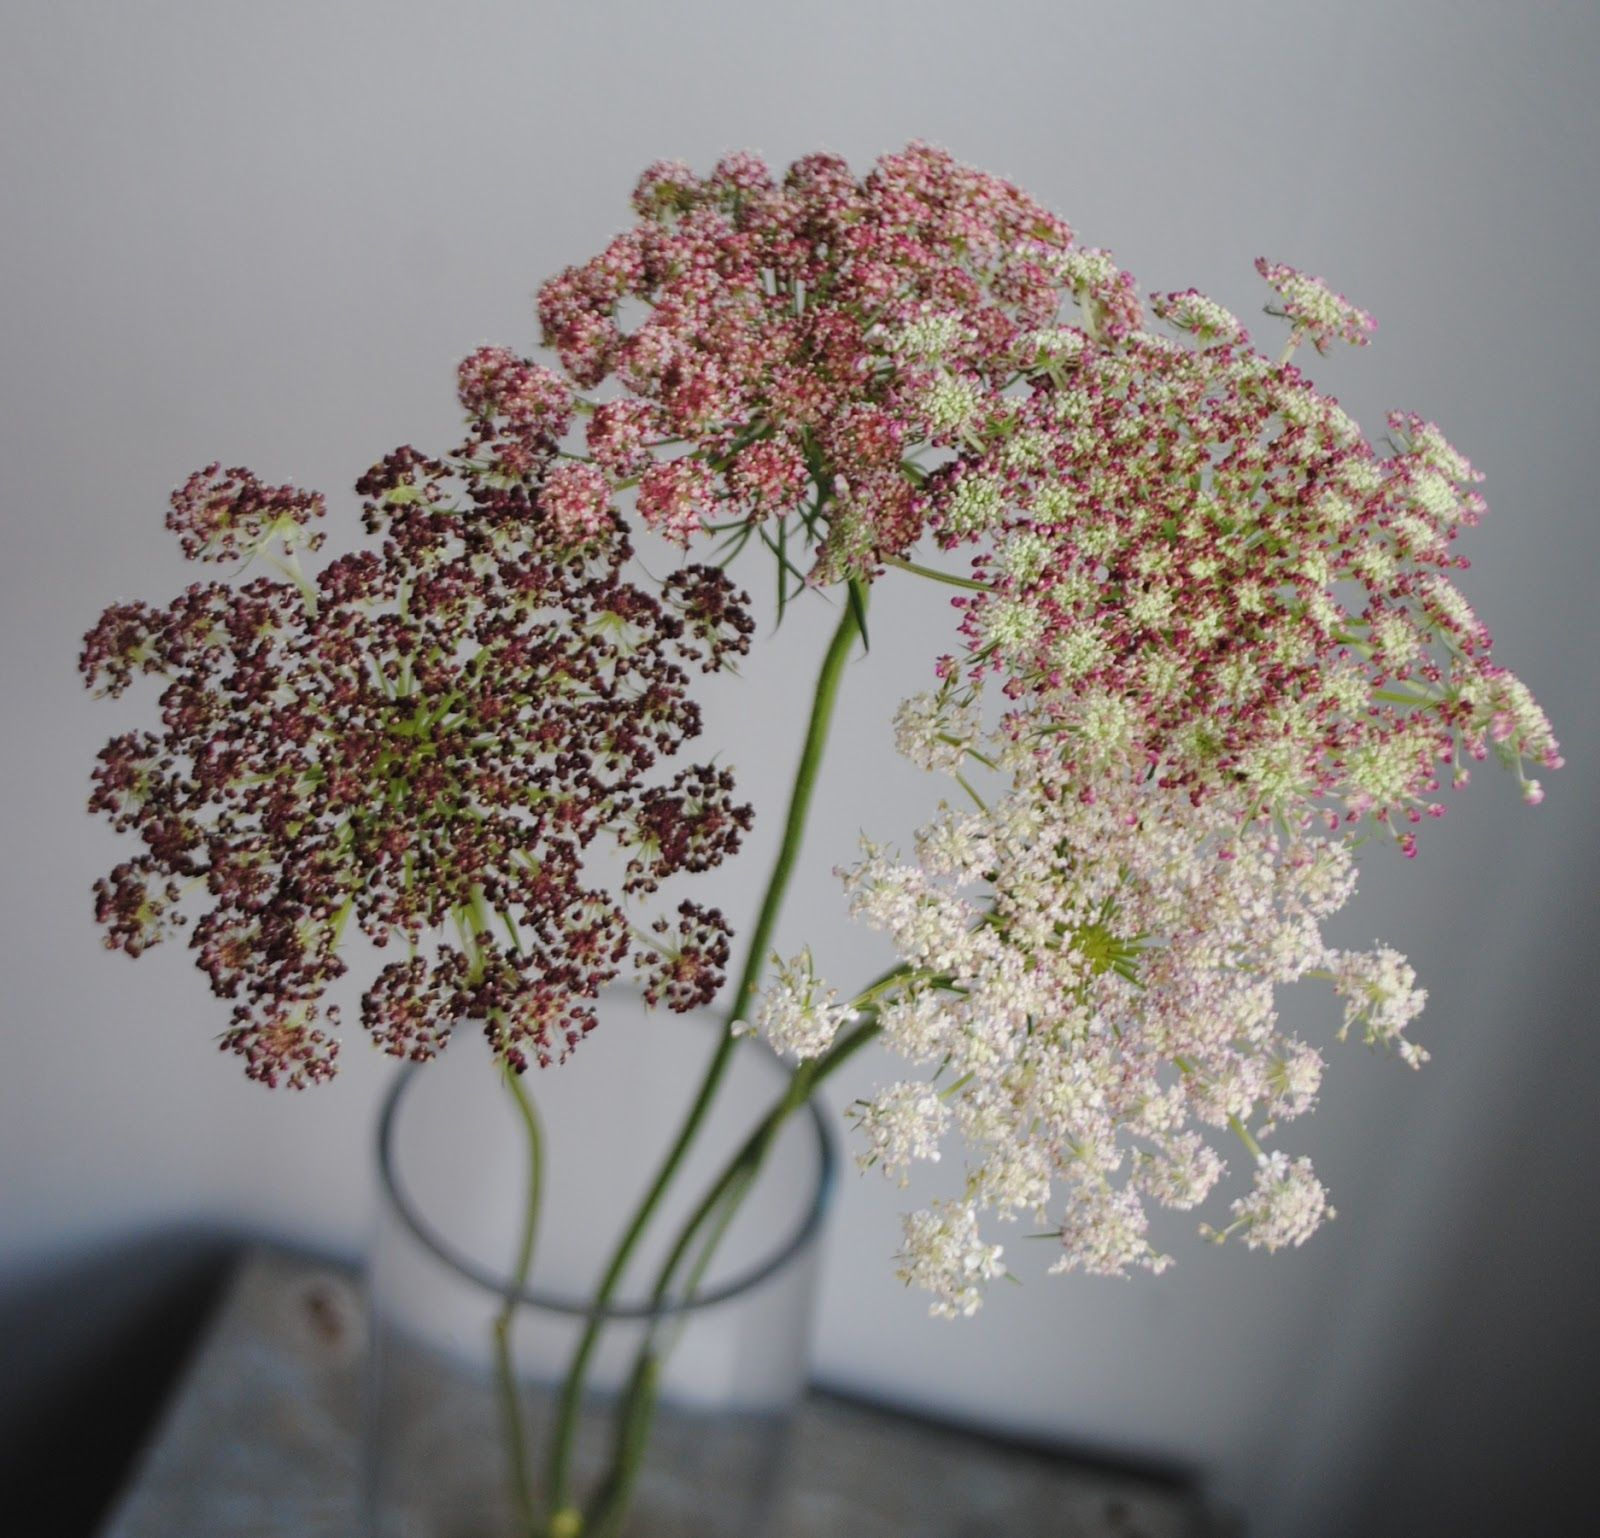 Daucus Carota Aka Queen Annes Lacebishops Lace Chocolate Lace